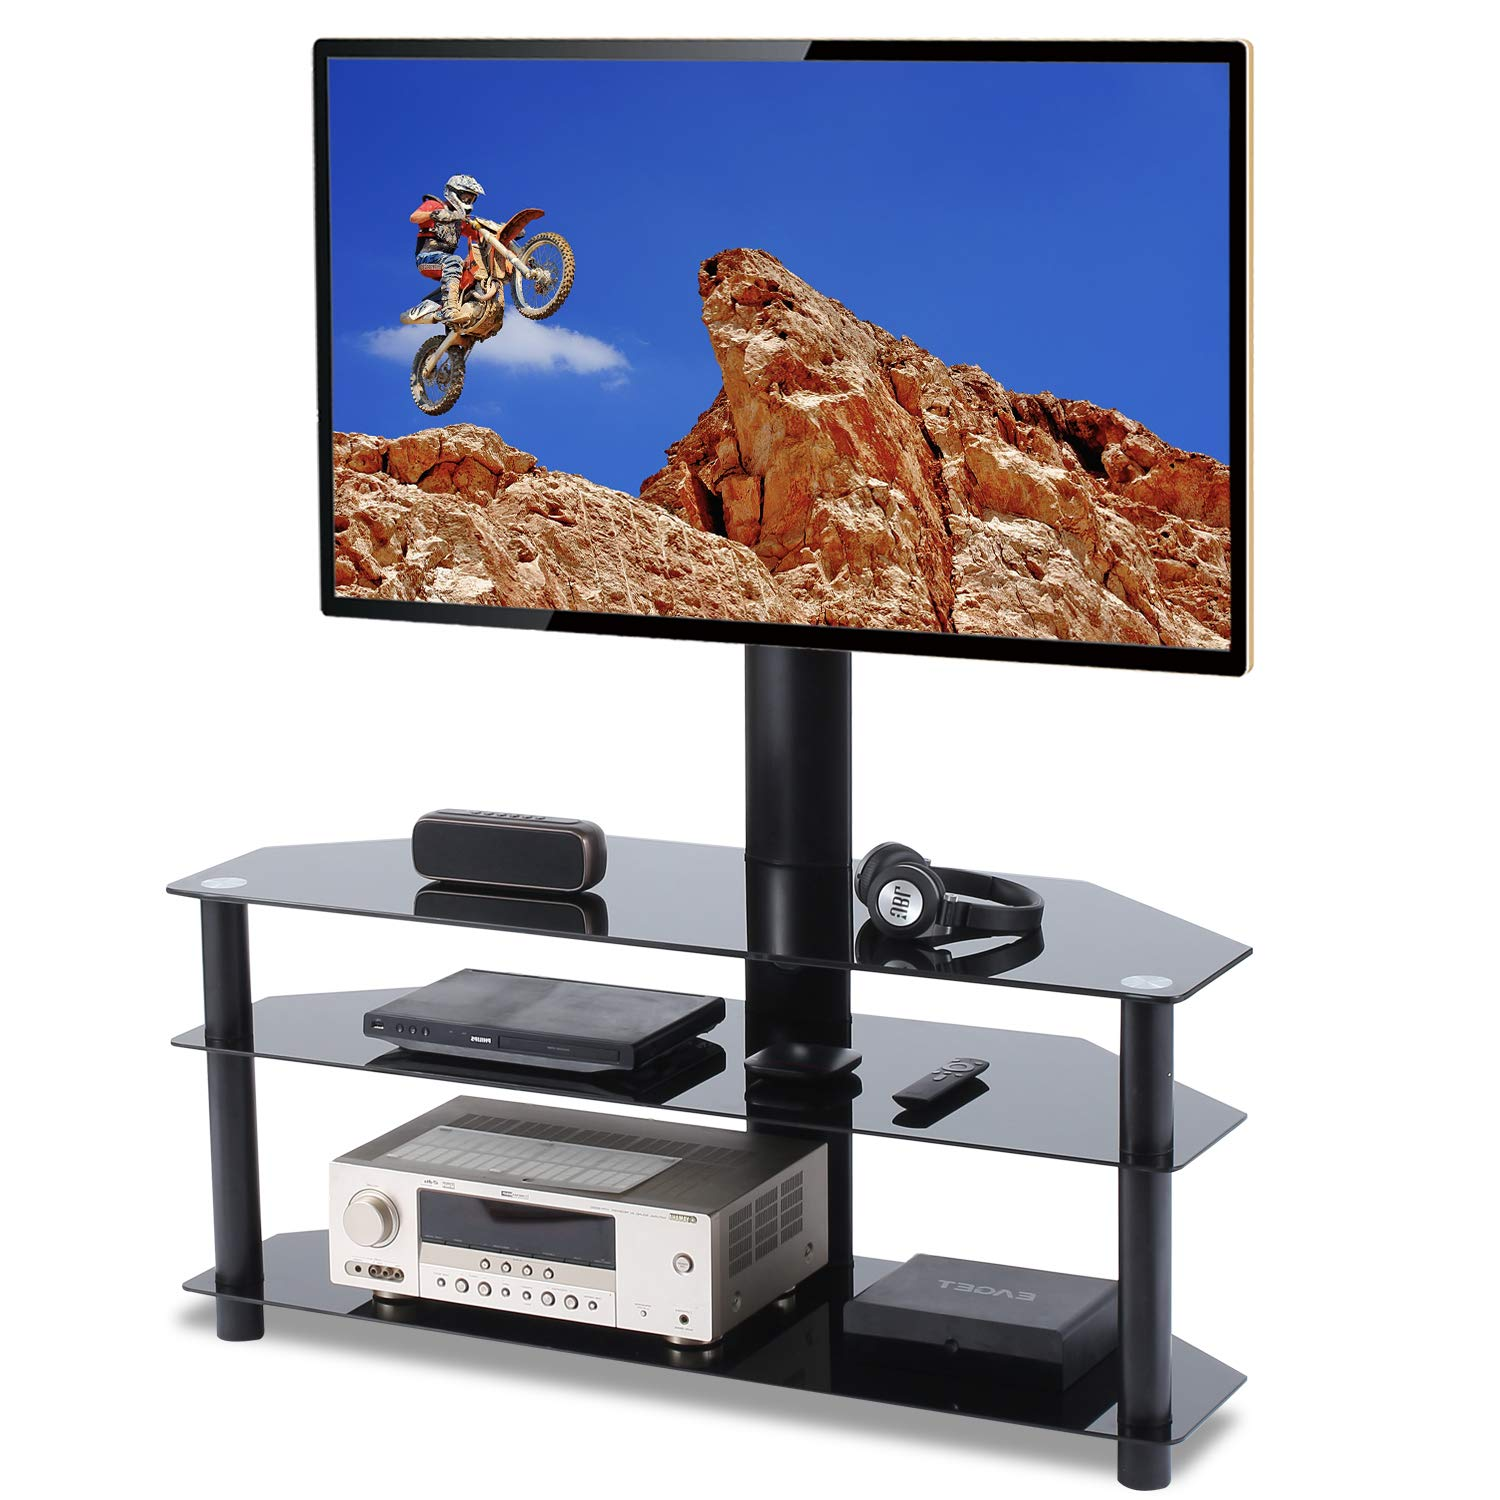 TAVR Swivel Floor TV Stand with Mount 3-in-1 Flat Panel Height Adjustable Entertainment Stand for 32 37 42 47 50 55 60 65 inch Plasma LCD LED QLED Flat or Curved Screen TV 3-Tier Media Stand TW1002 by TAVR Furniture